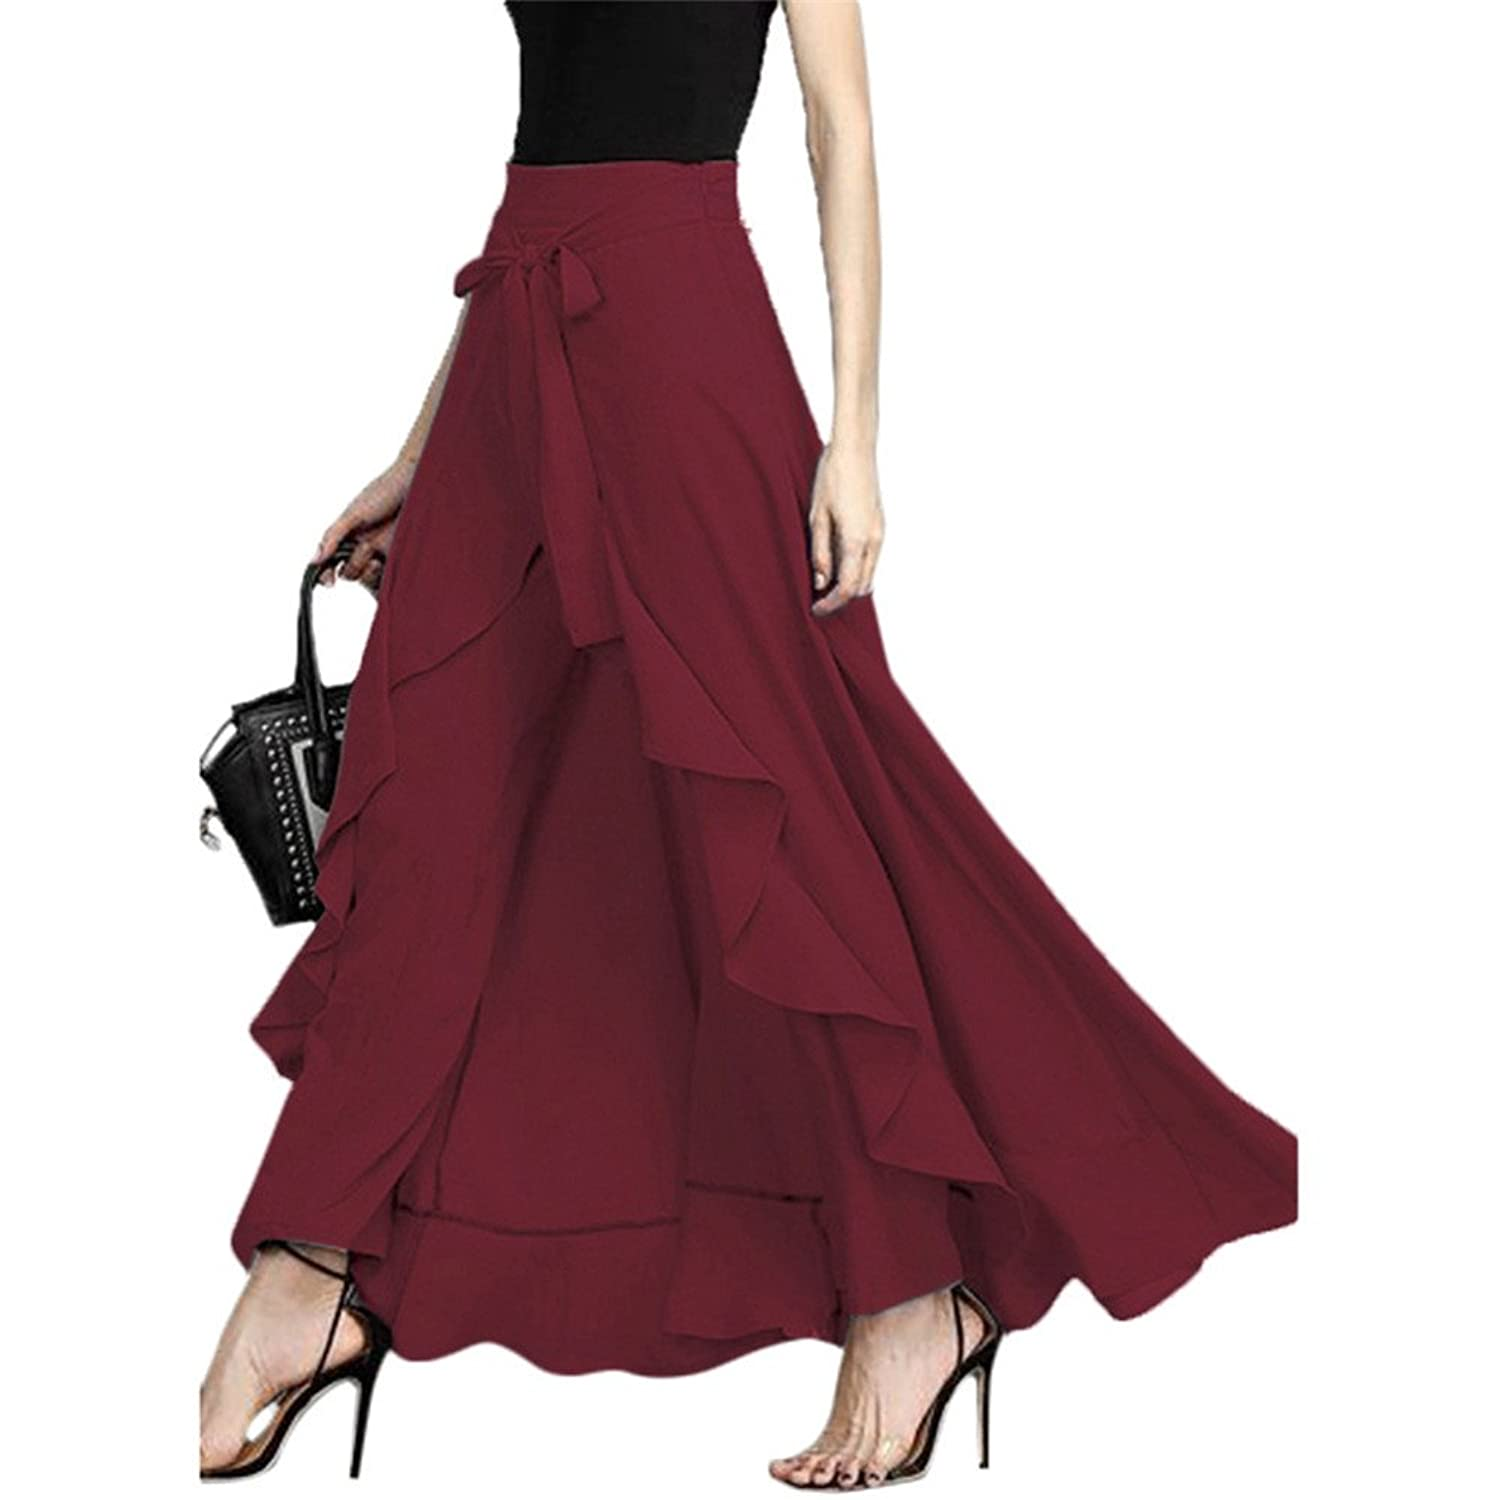 f20f17602 Material: Polyester and spandex, soft and comfortable to wear. The fancy  style is greatly flaunted by the maxi-skirt overlay, bow-tie ribbon, ...